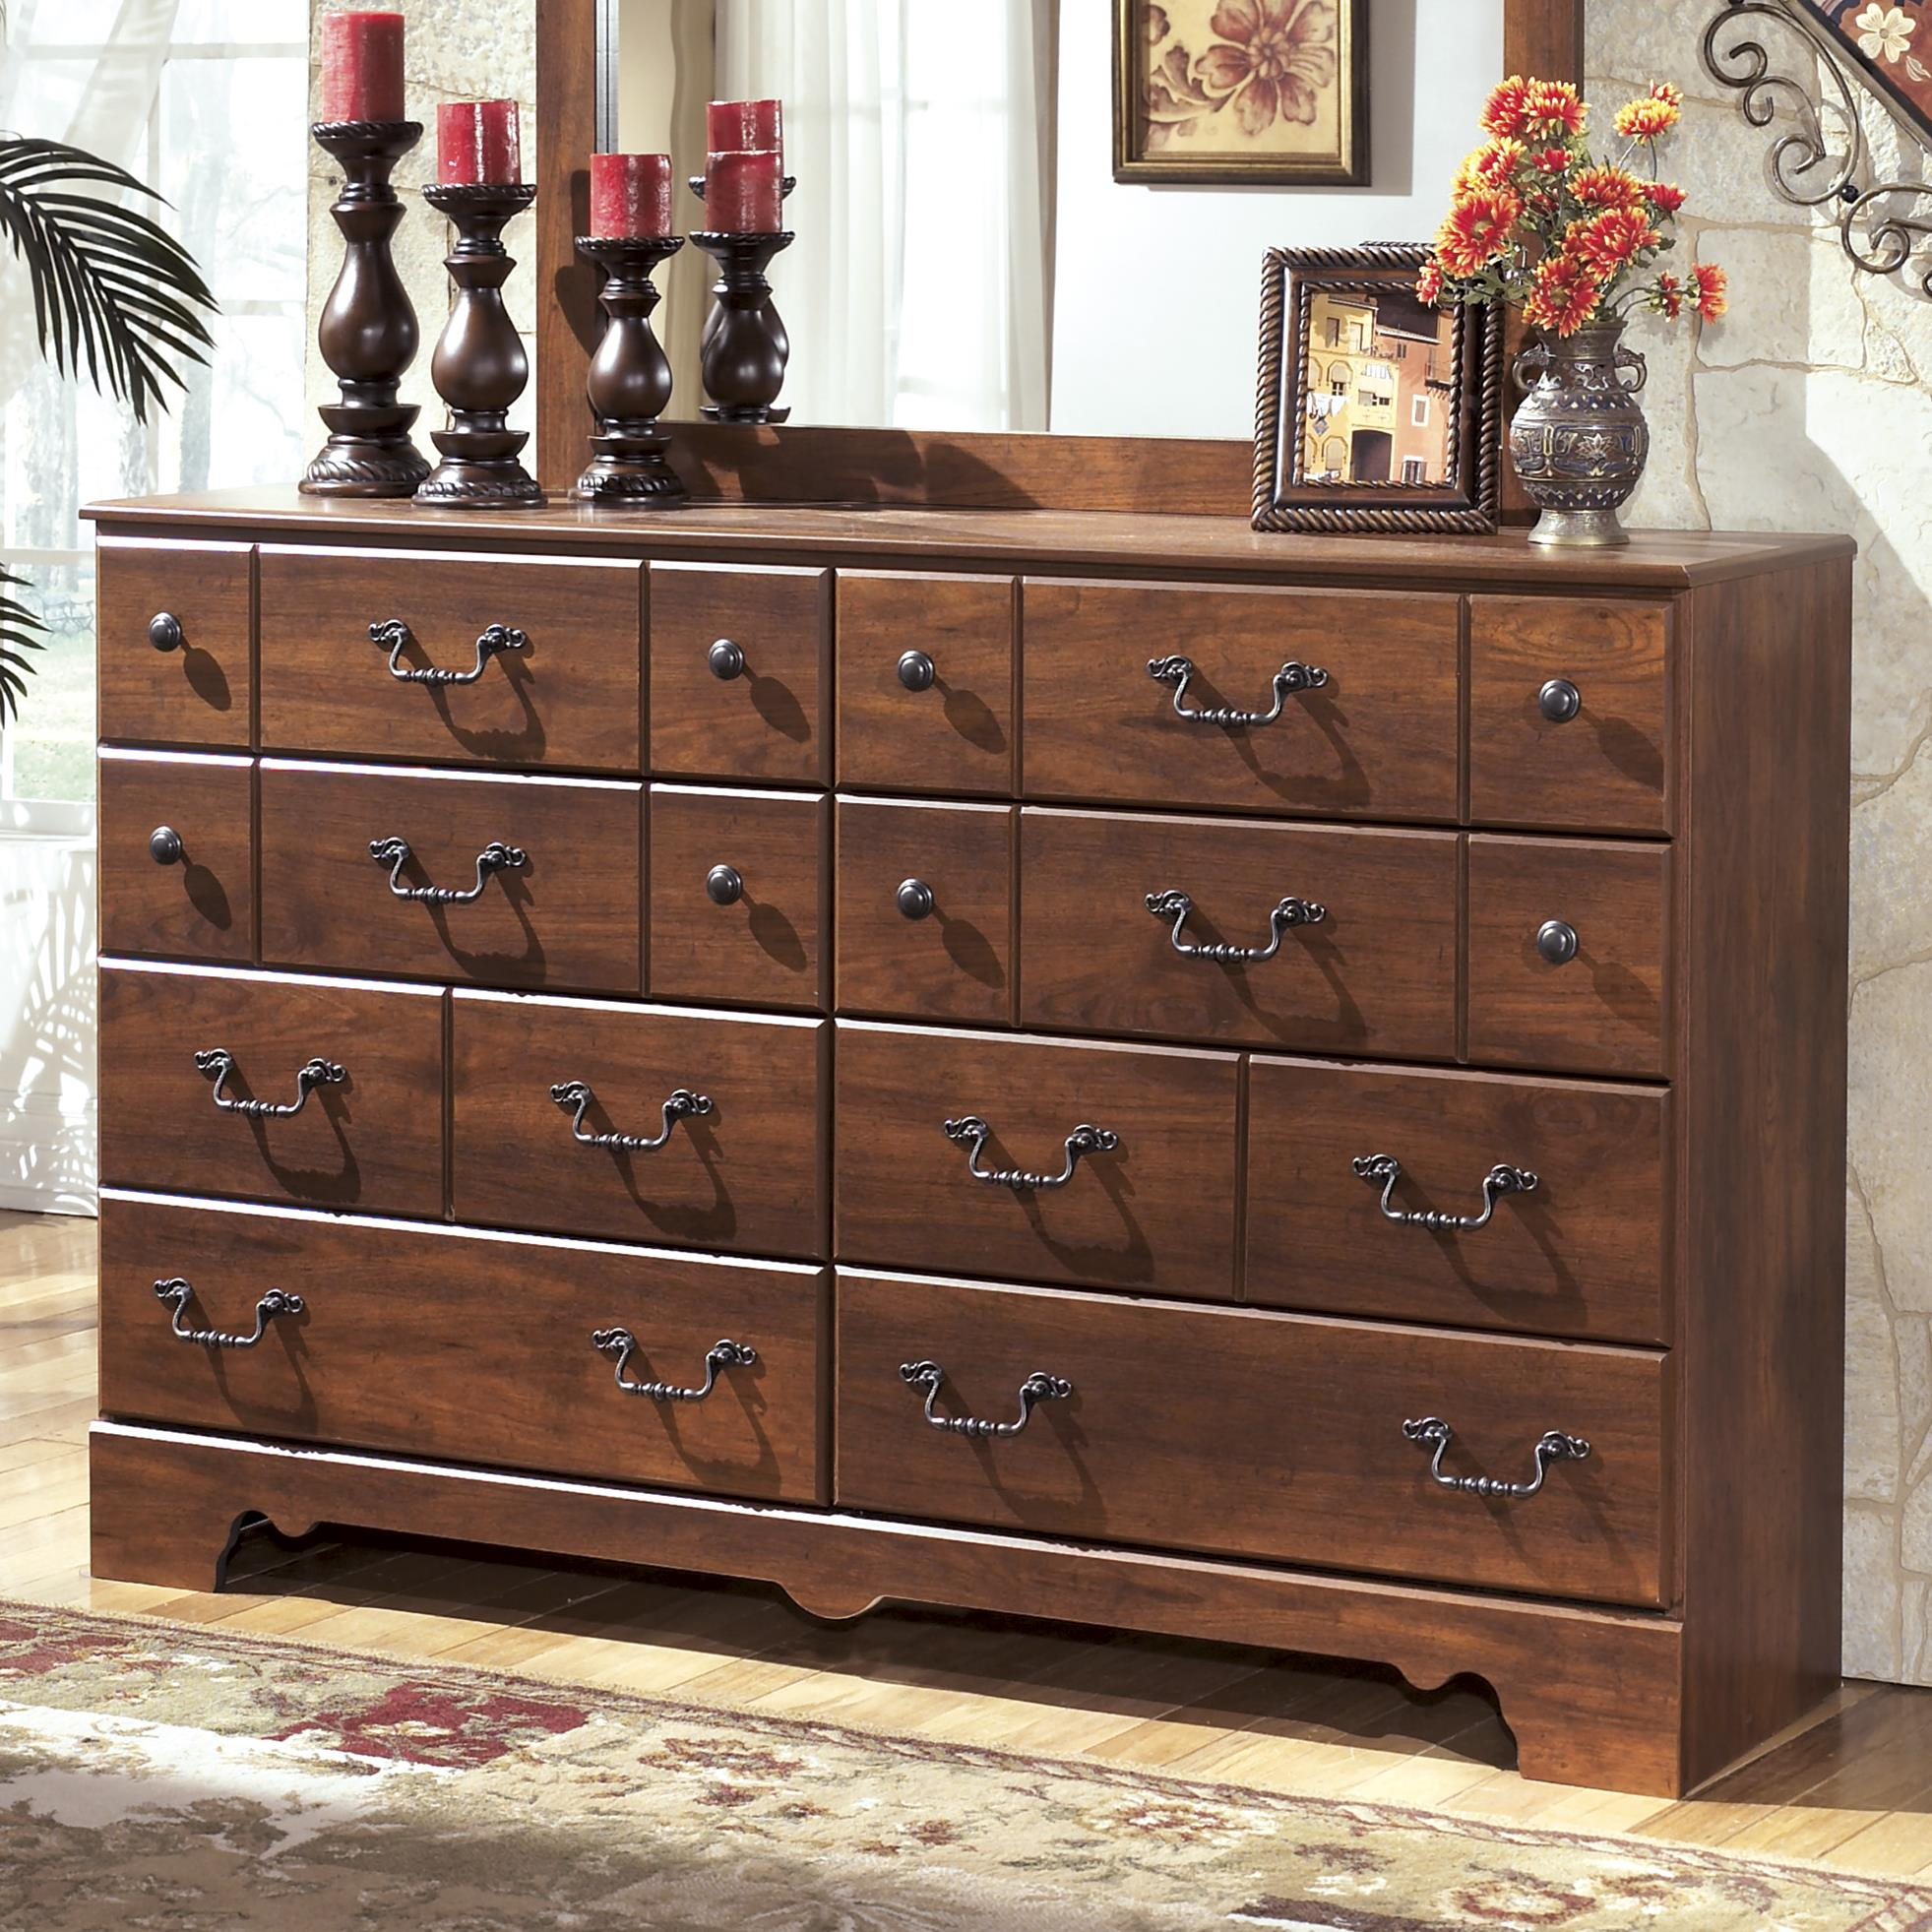 Signature Design by Ashley Timberline 8 Drawer Dresser - Item Number: B258-31